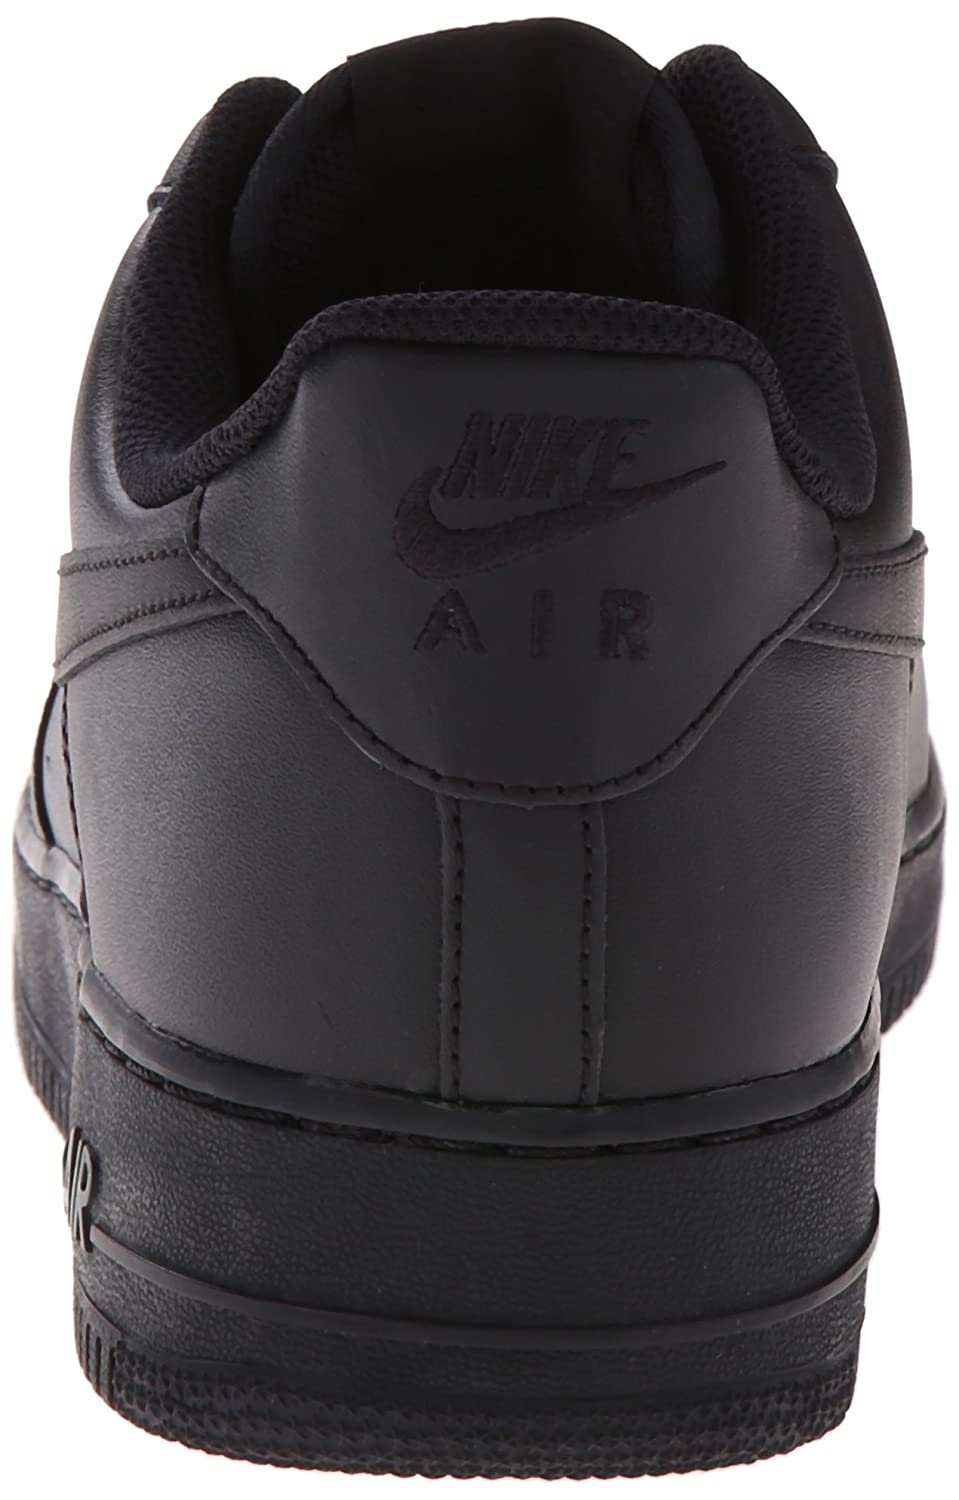 hot sale online 75874 f07b5 Amazon.com   Nike Men s Air Force 1 Low Sneaker   Basketball